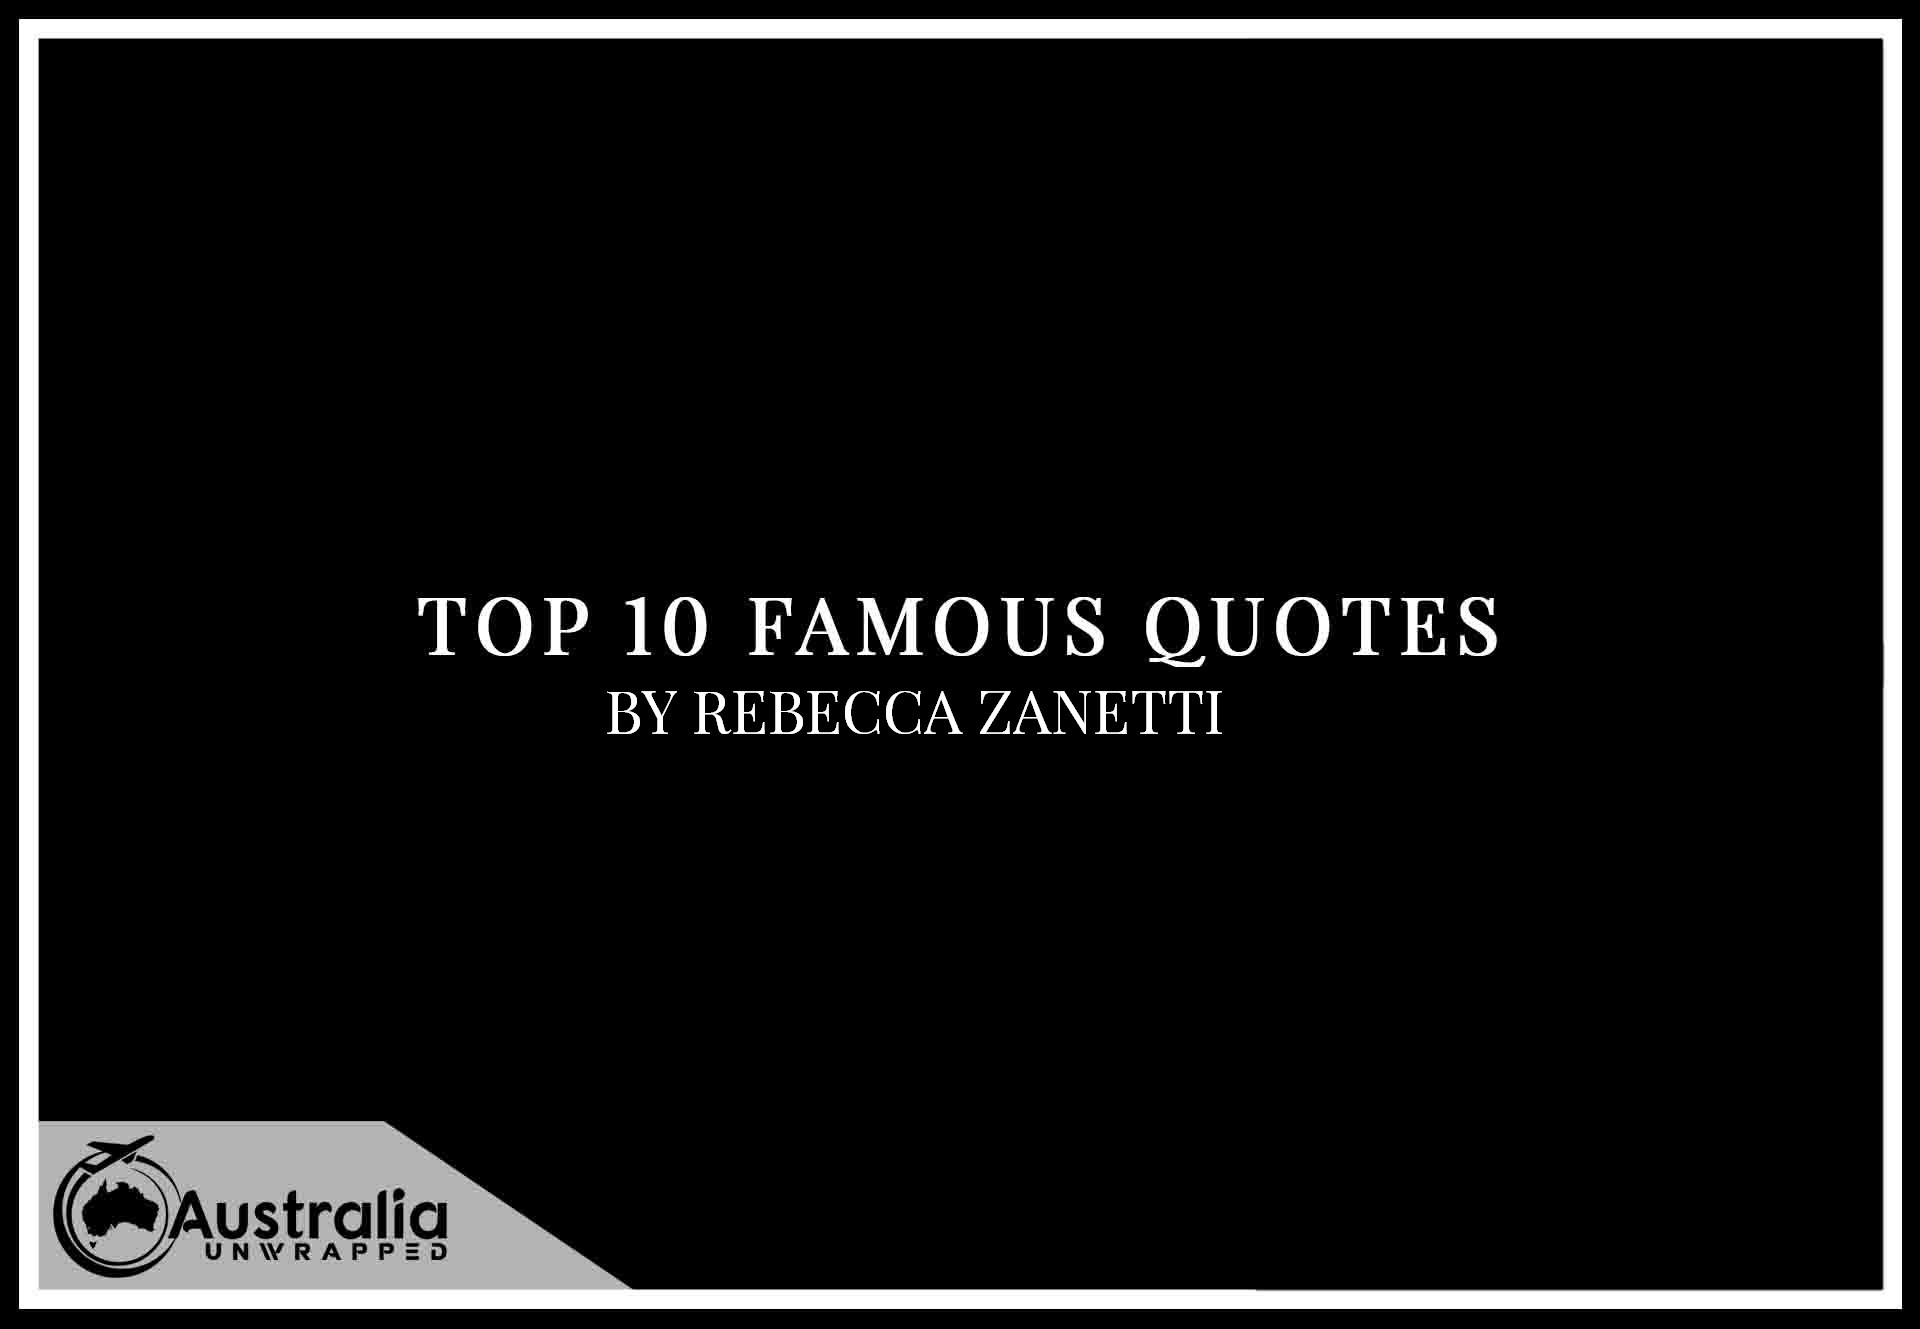 rebecca zanetti's Top 10 Popular and Famous Quotes